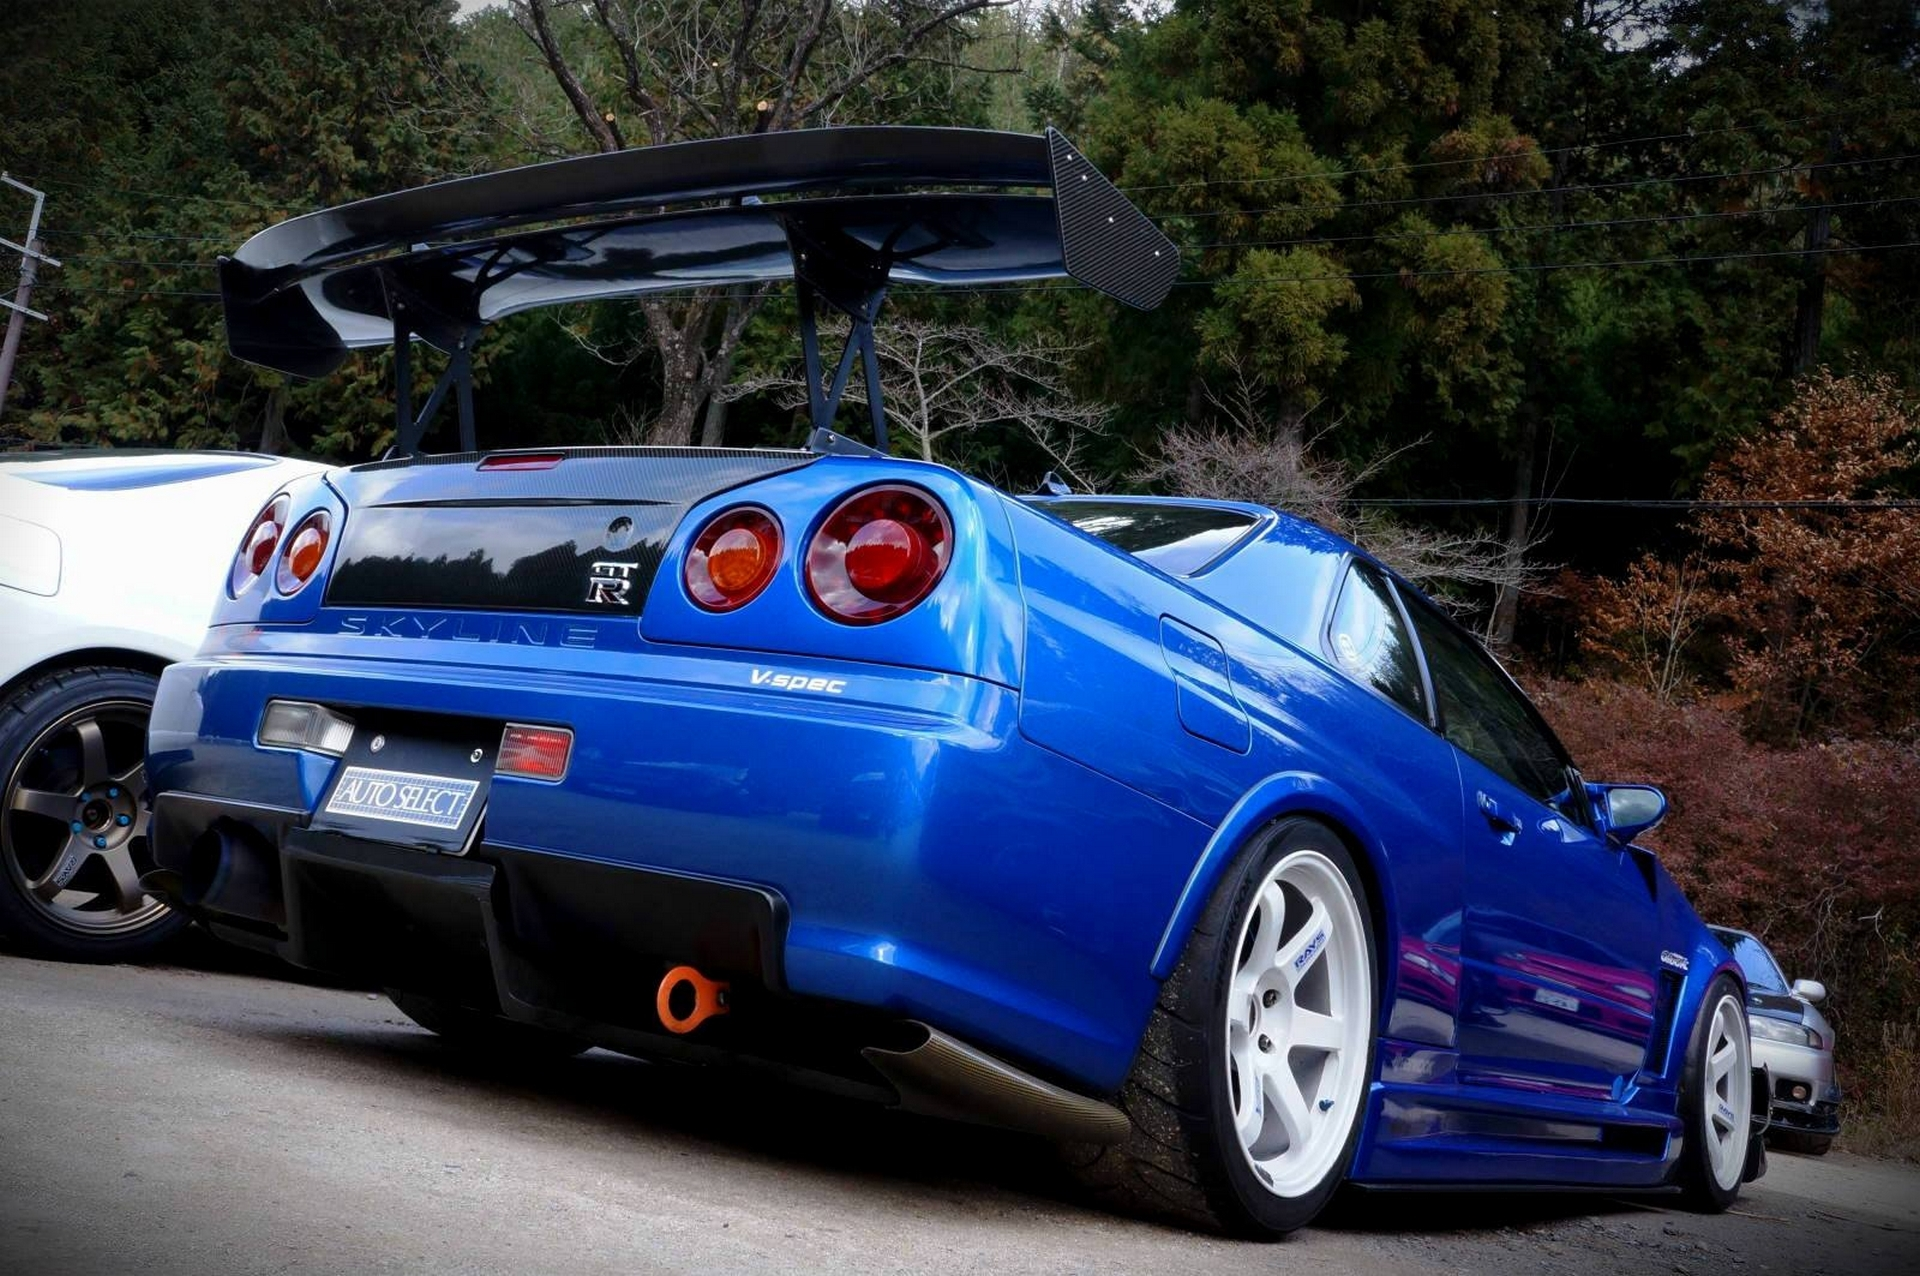 Cars Wallpaper Infront Of Skyline Nissan Skyline R34 Full Hd Wallpaper And Background Image